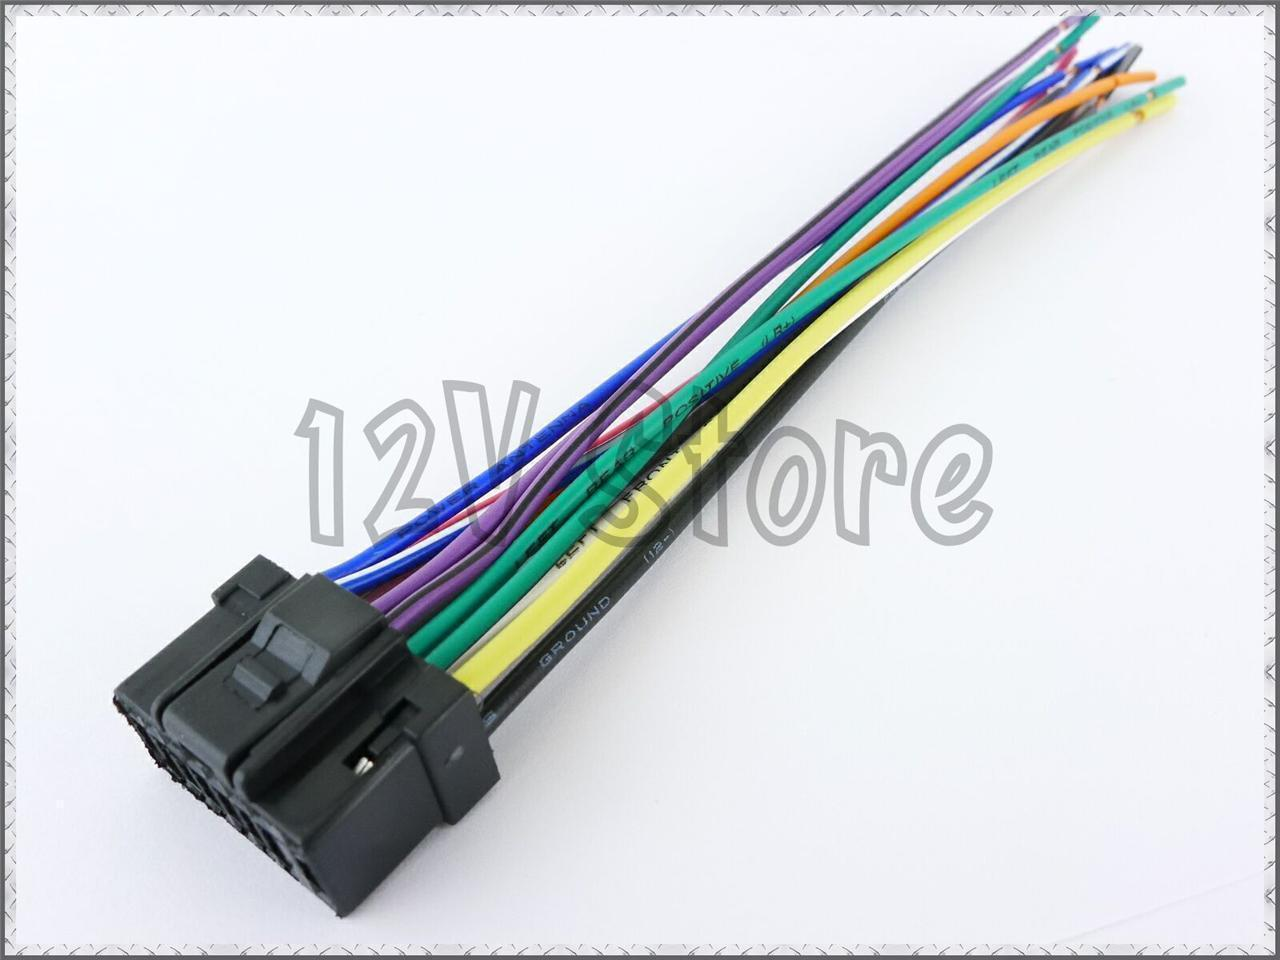 Alpine Cde 9873 Ida X200 Power Speaker Wire Harness Plug Connector Stereo Connectors Cable Adapter 1 Of 1only 2 Available See More